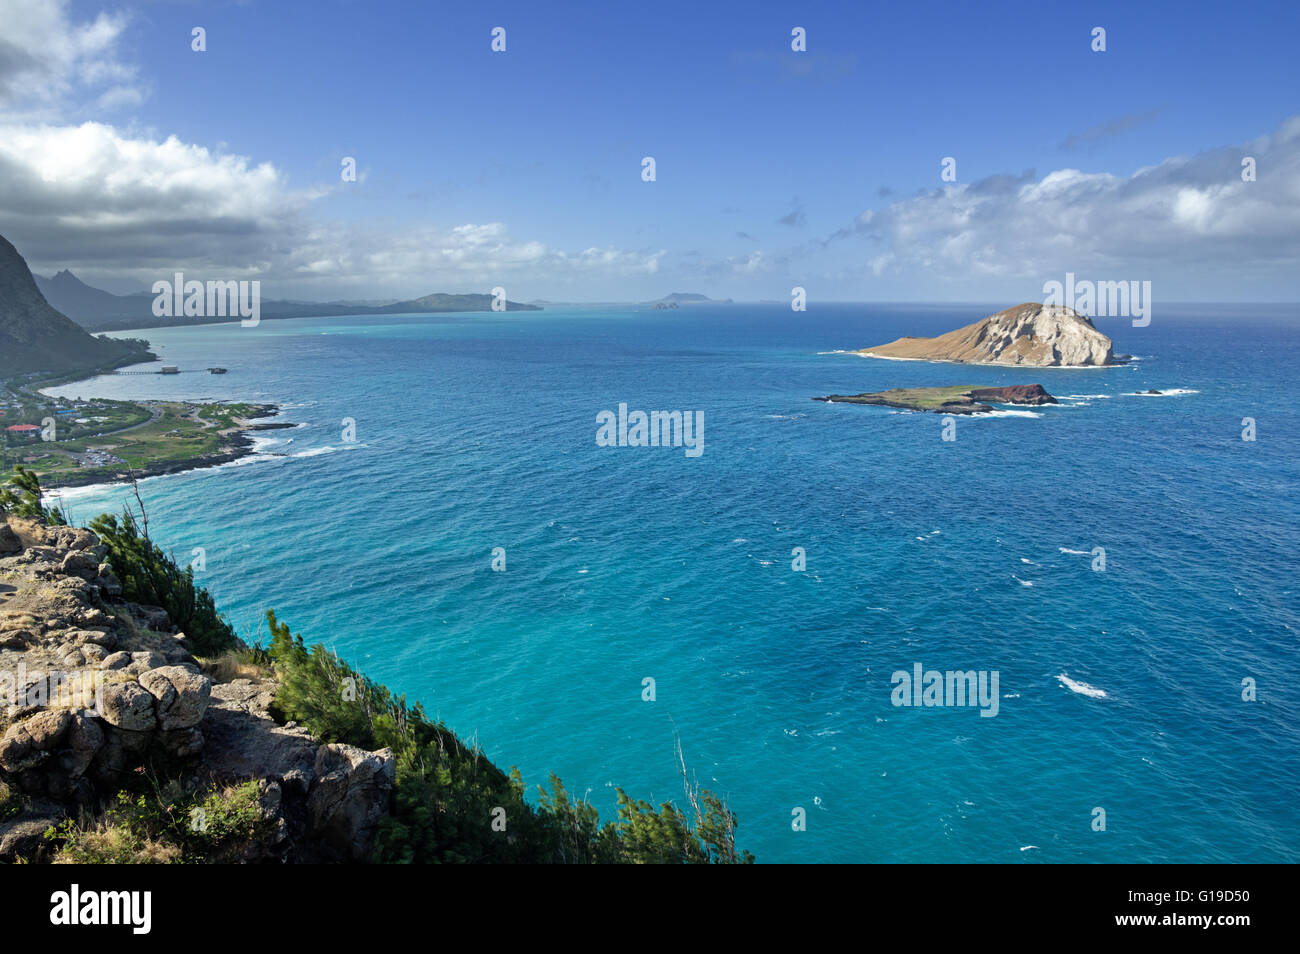 view of the windy shore of Oahu from Makapuu point - Stock Image